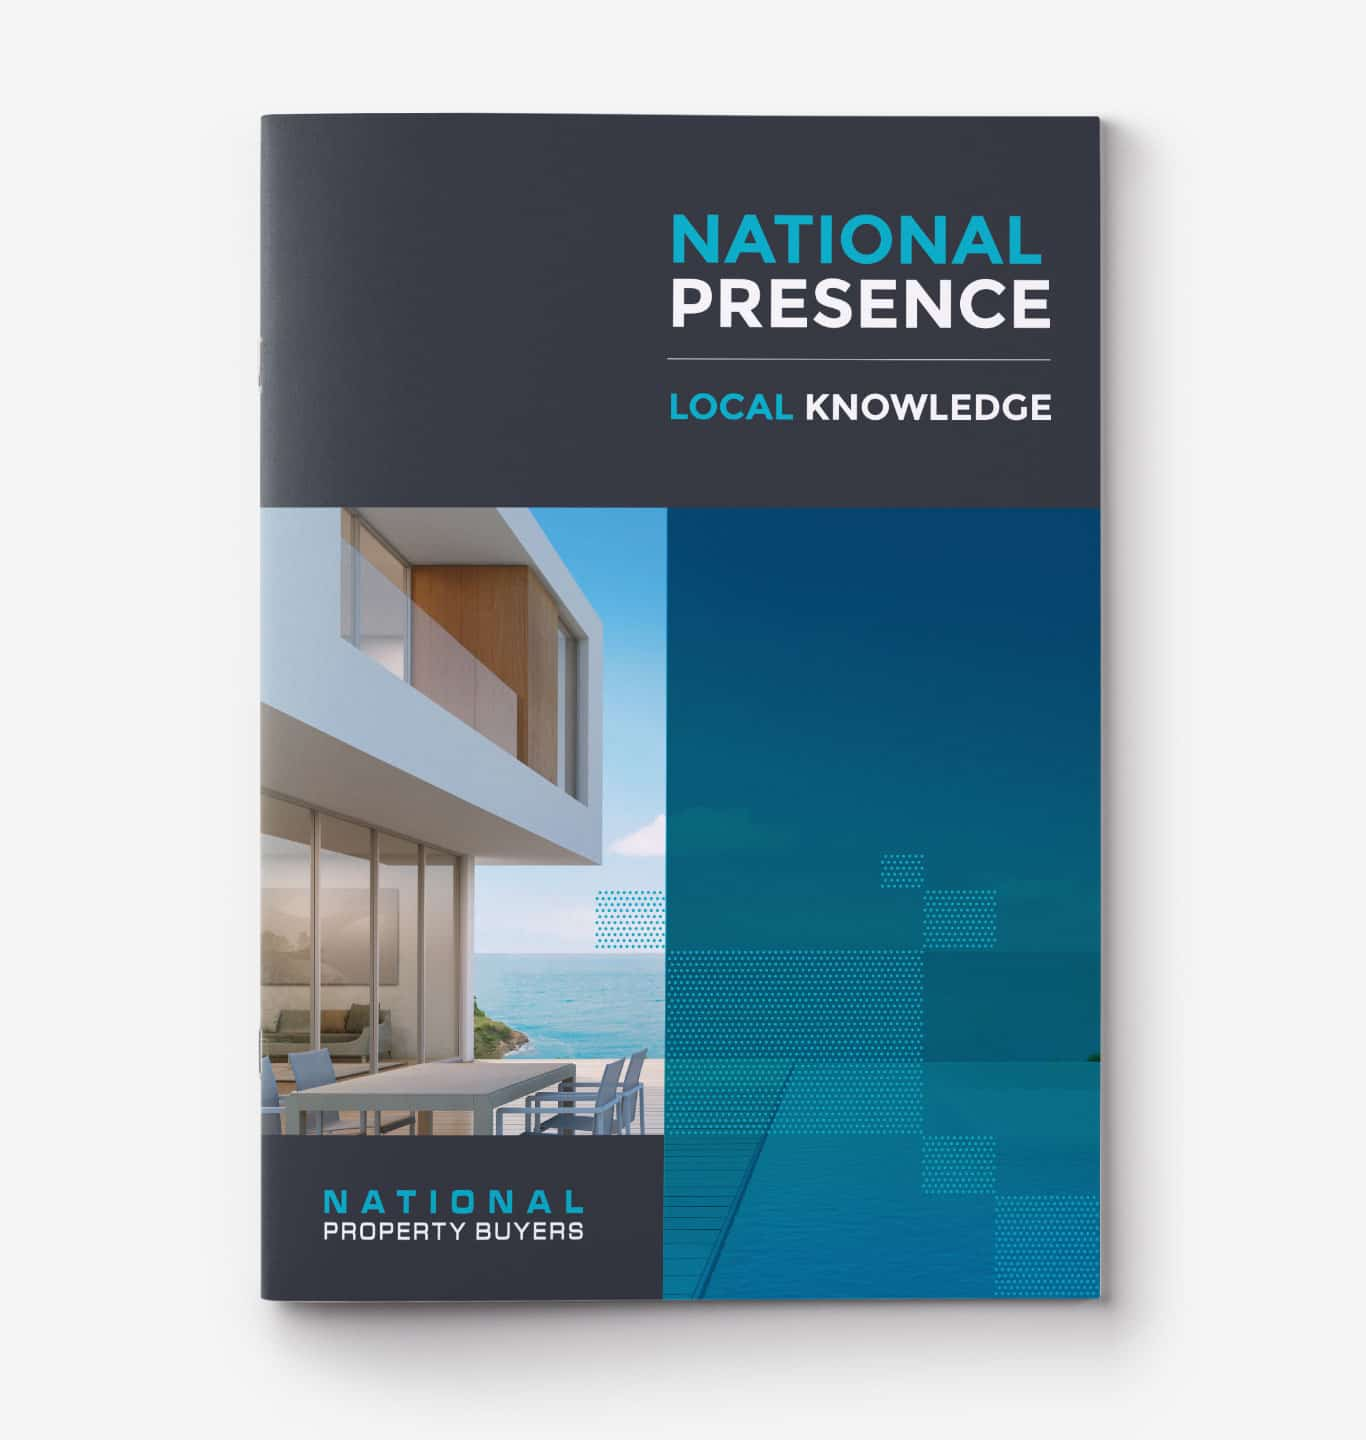 National Property Buyers cover print design